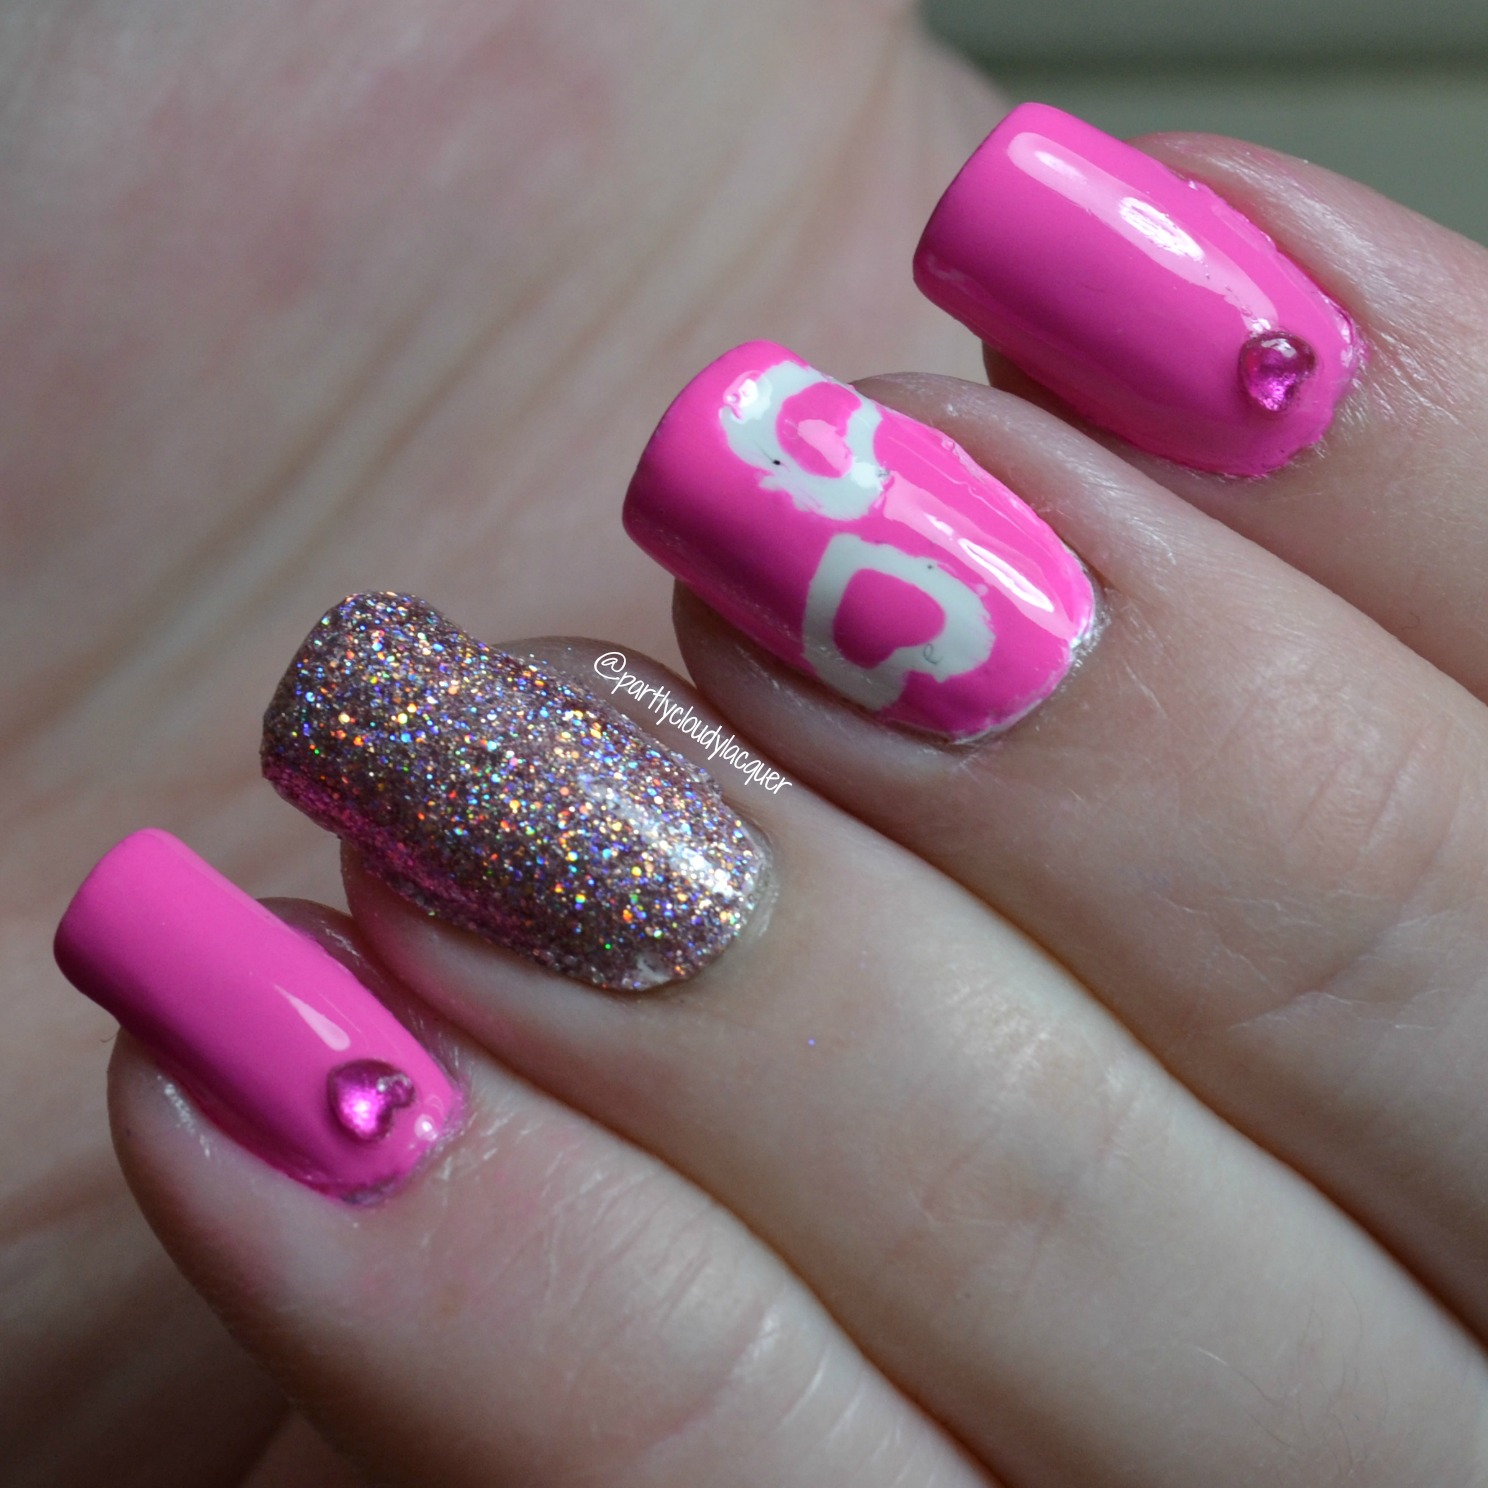 Partly Cloudy With A Chance Of Lacquer Pink Heart Skittle Nails